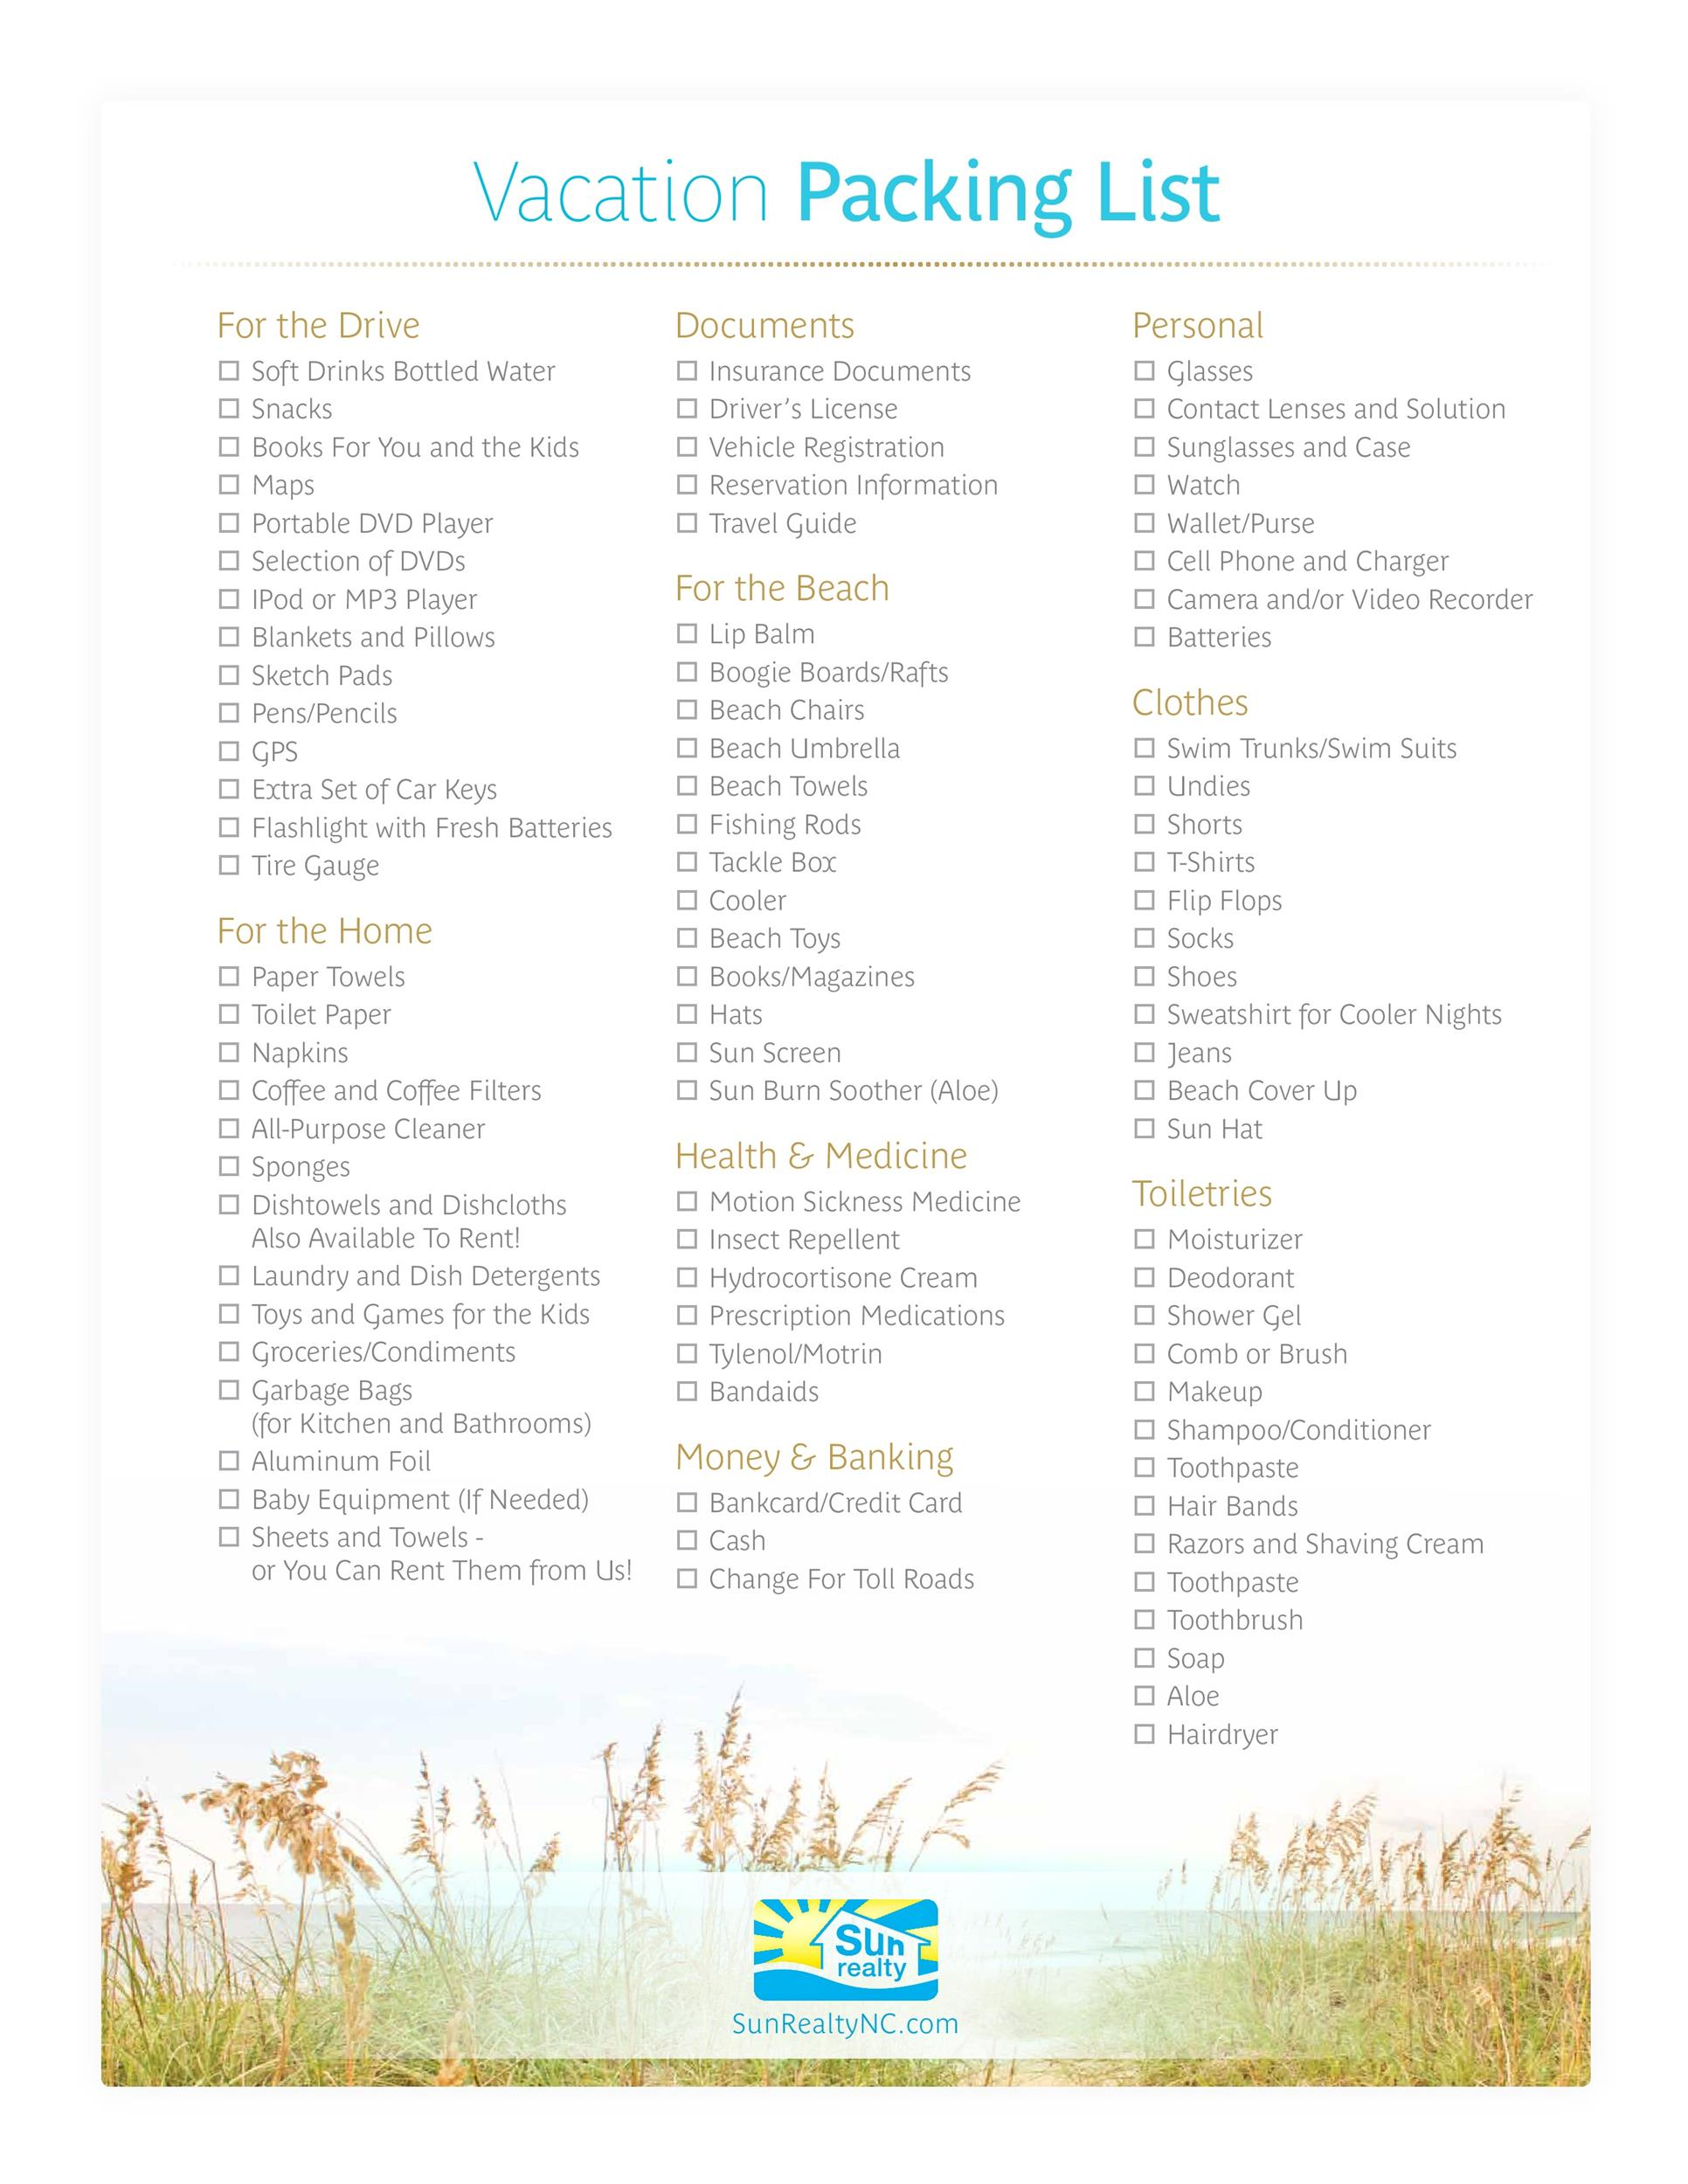 40+ Awesome Printable Packing Lists! (College, Cruise, Camping etc) - Vacation Packing List Printable